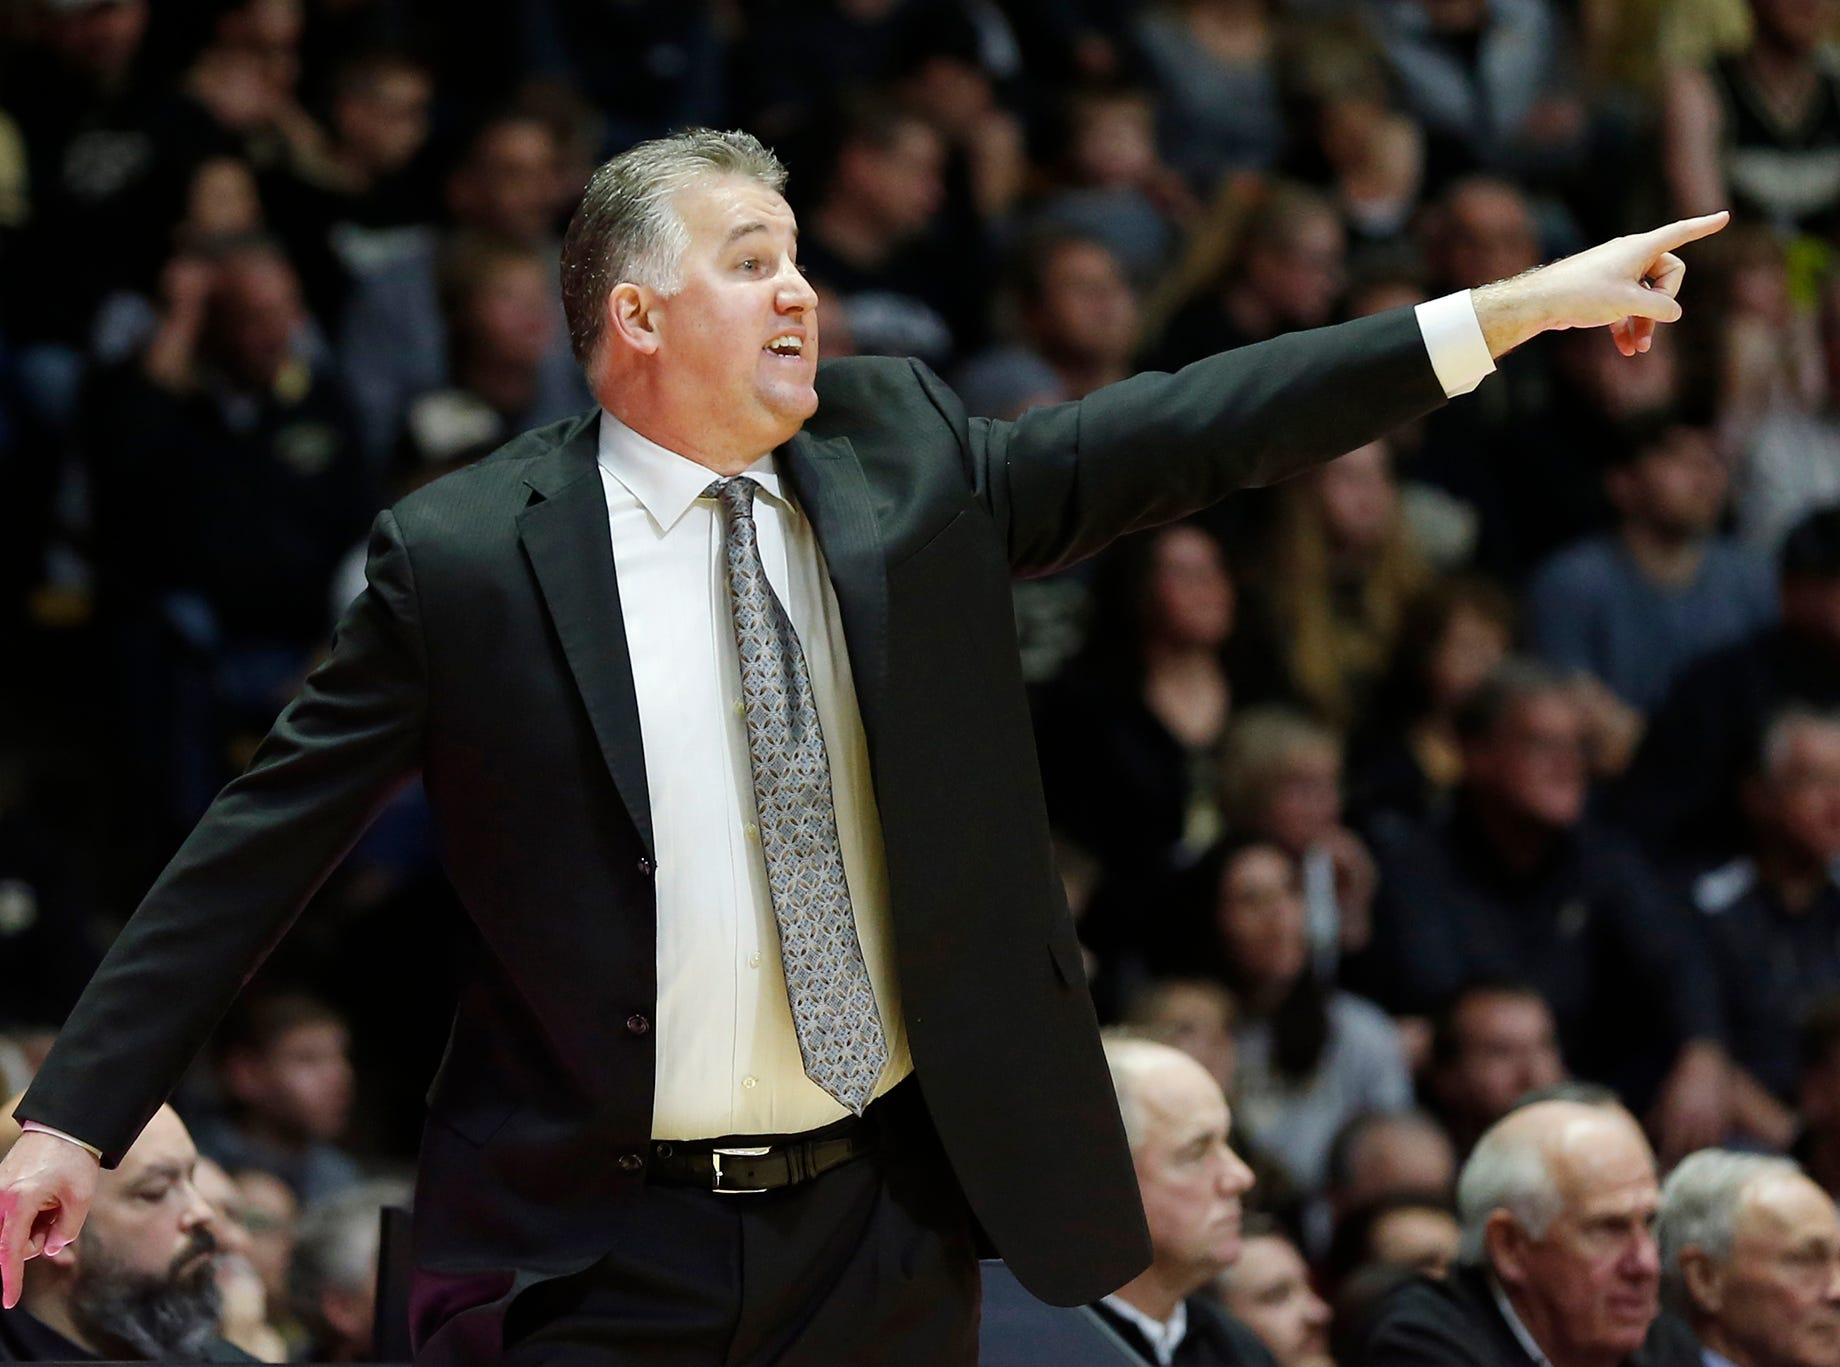 Purdue head coach Matt Painter shouts instructions to the Boilermakers as they bring the ball upcourt against the full court press of Belmont in the second half Saturday, December 29, 2018, at Mackey Arena. Purdue defeated Belmont 73-62.